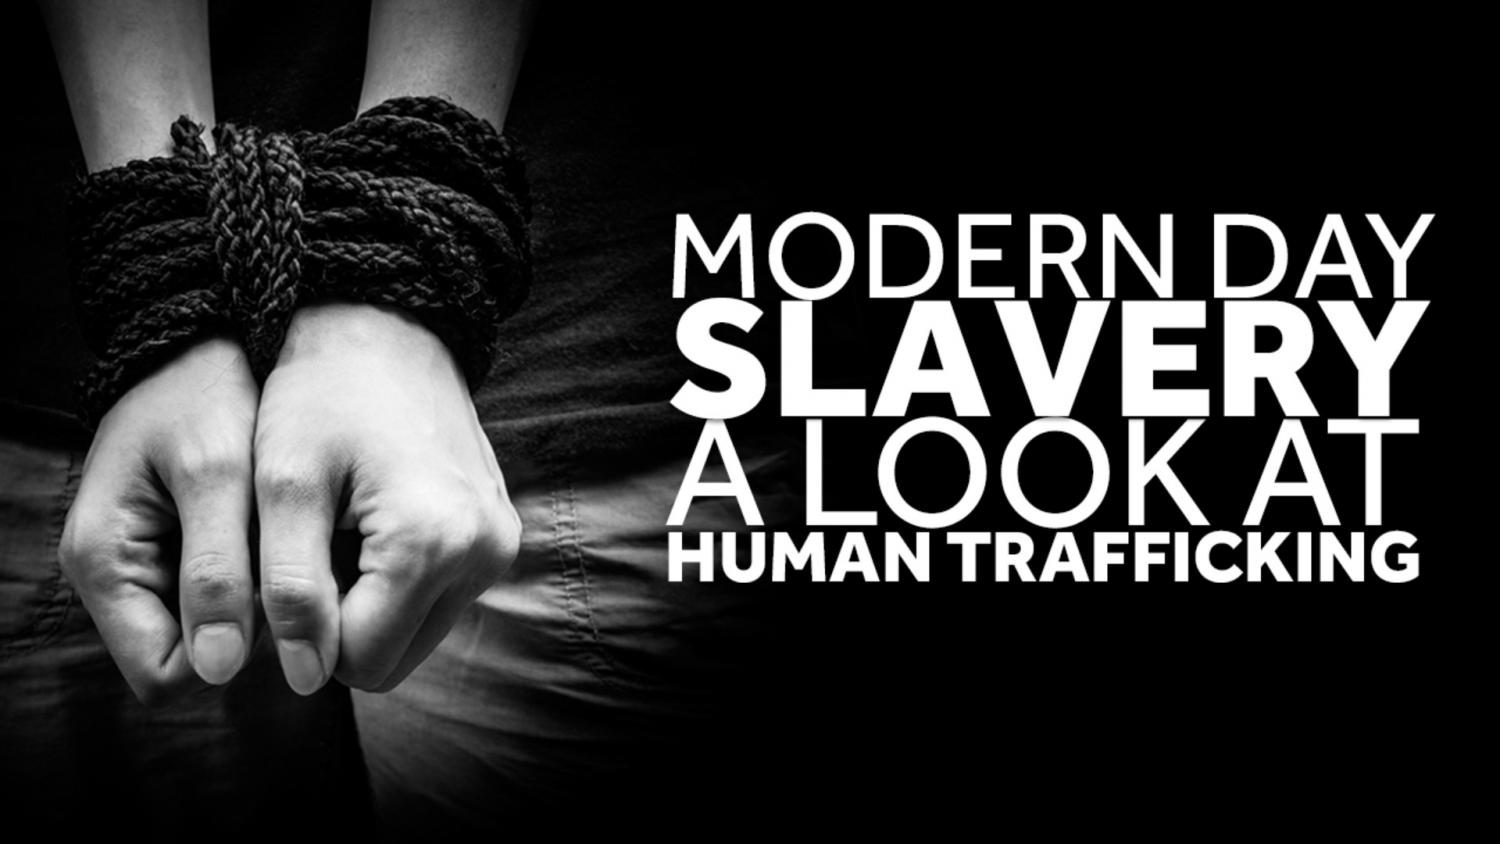 Stand Up to Human Trafficking